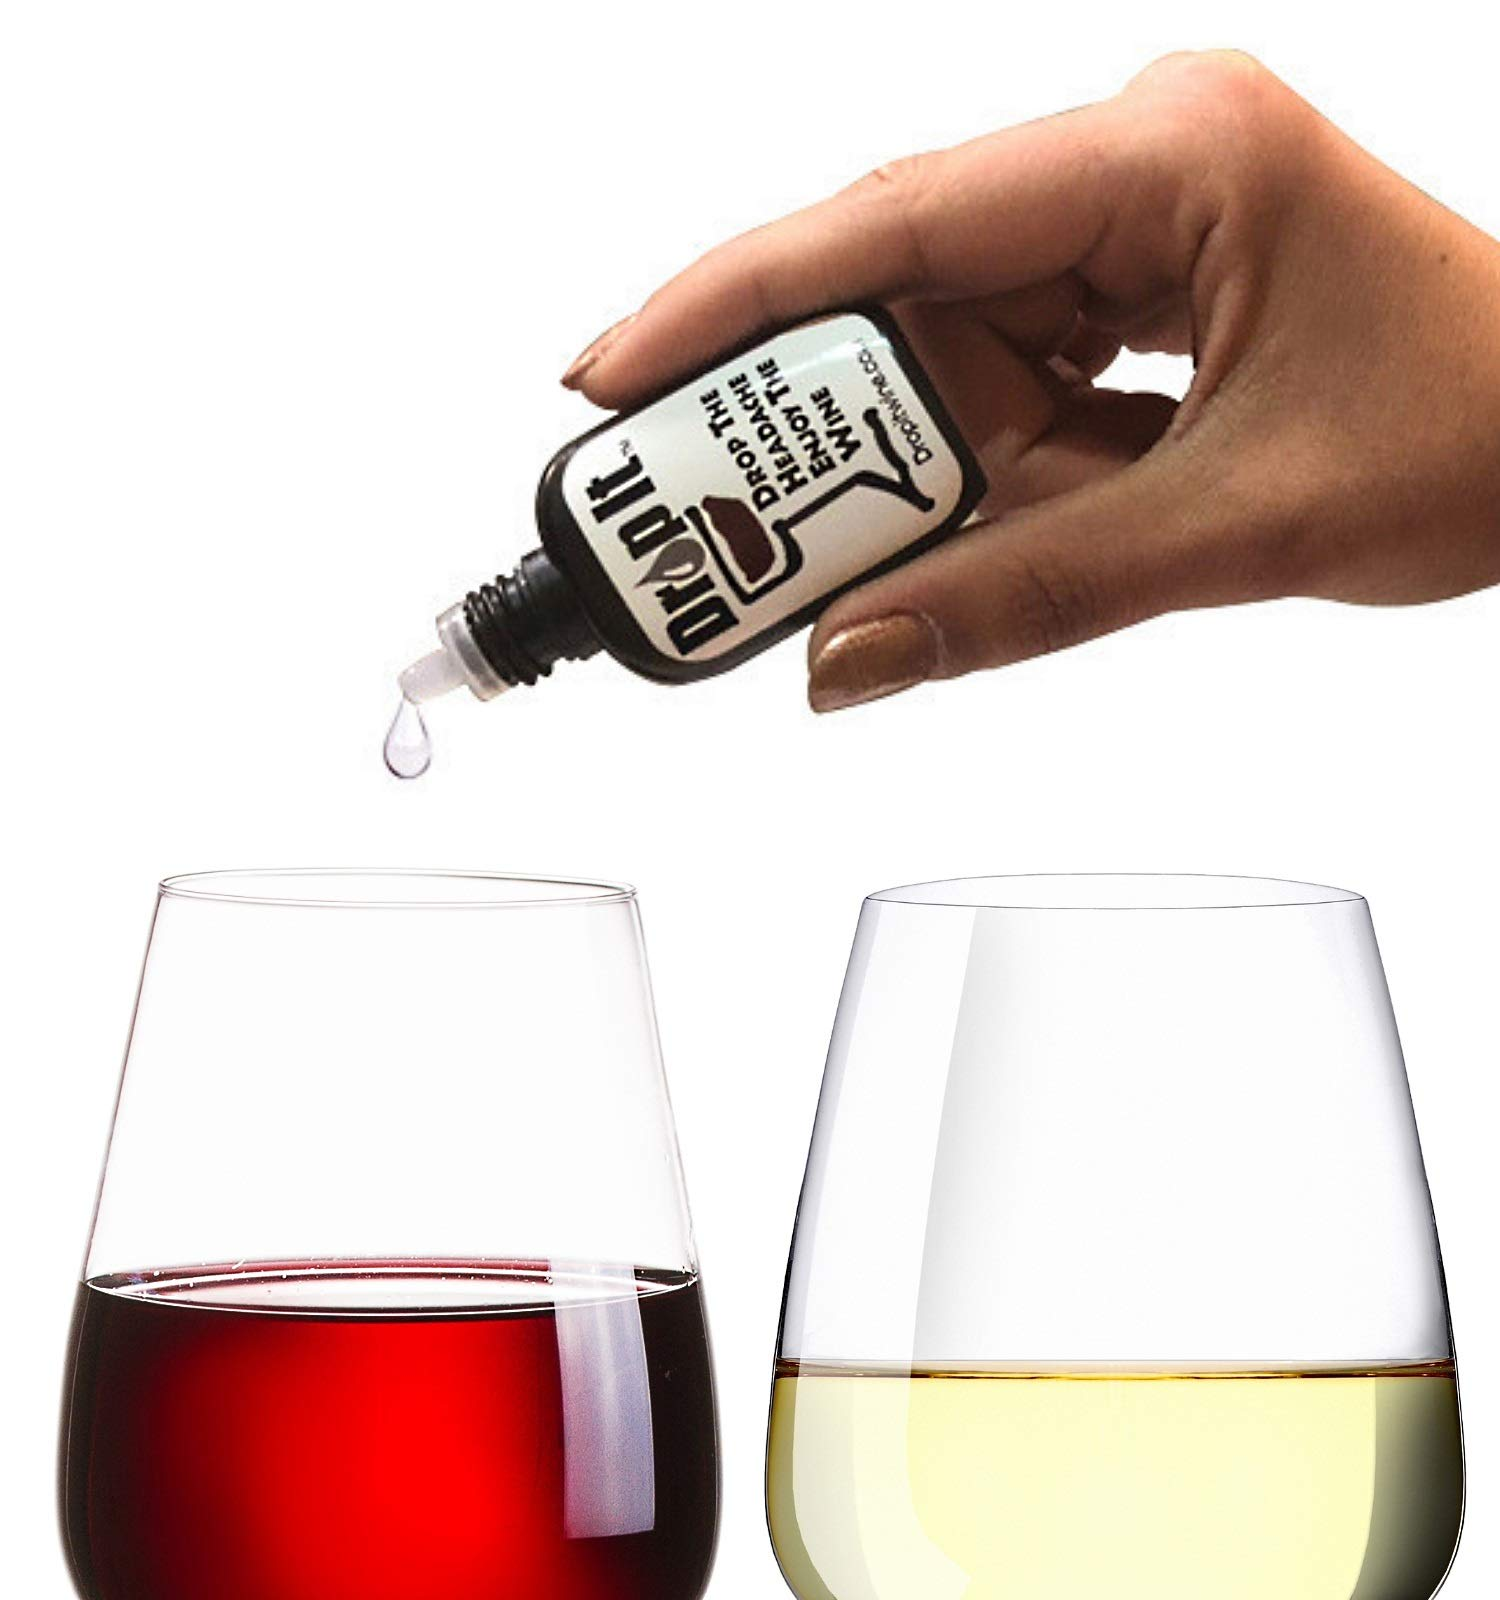 Drop It Wine Drops, 1 Pack - Natural Wine Sulfite Remover and Tannin Remover - Drop the Wine Headache, Enjoy Your Wine - Portable and Discrete - A Wine Filter or Wine Wand Alternative by Drop It Drop The Headache Enjoy The Wine